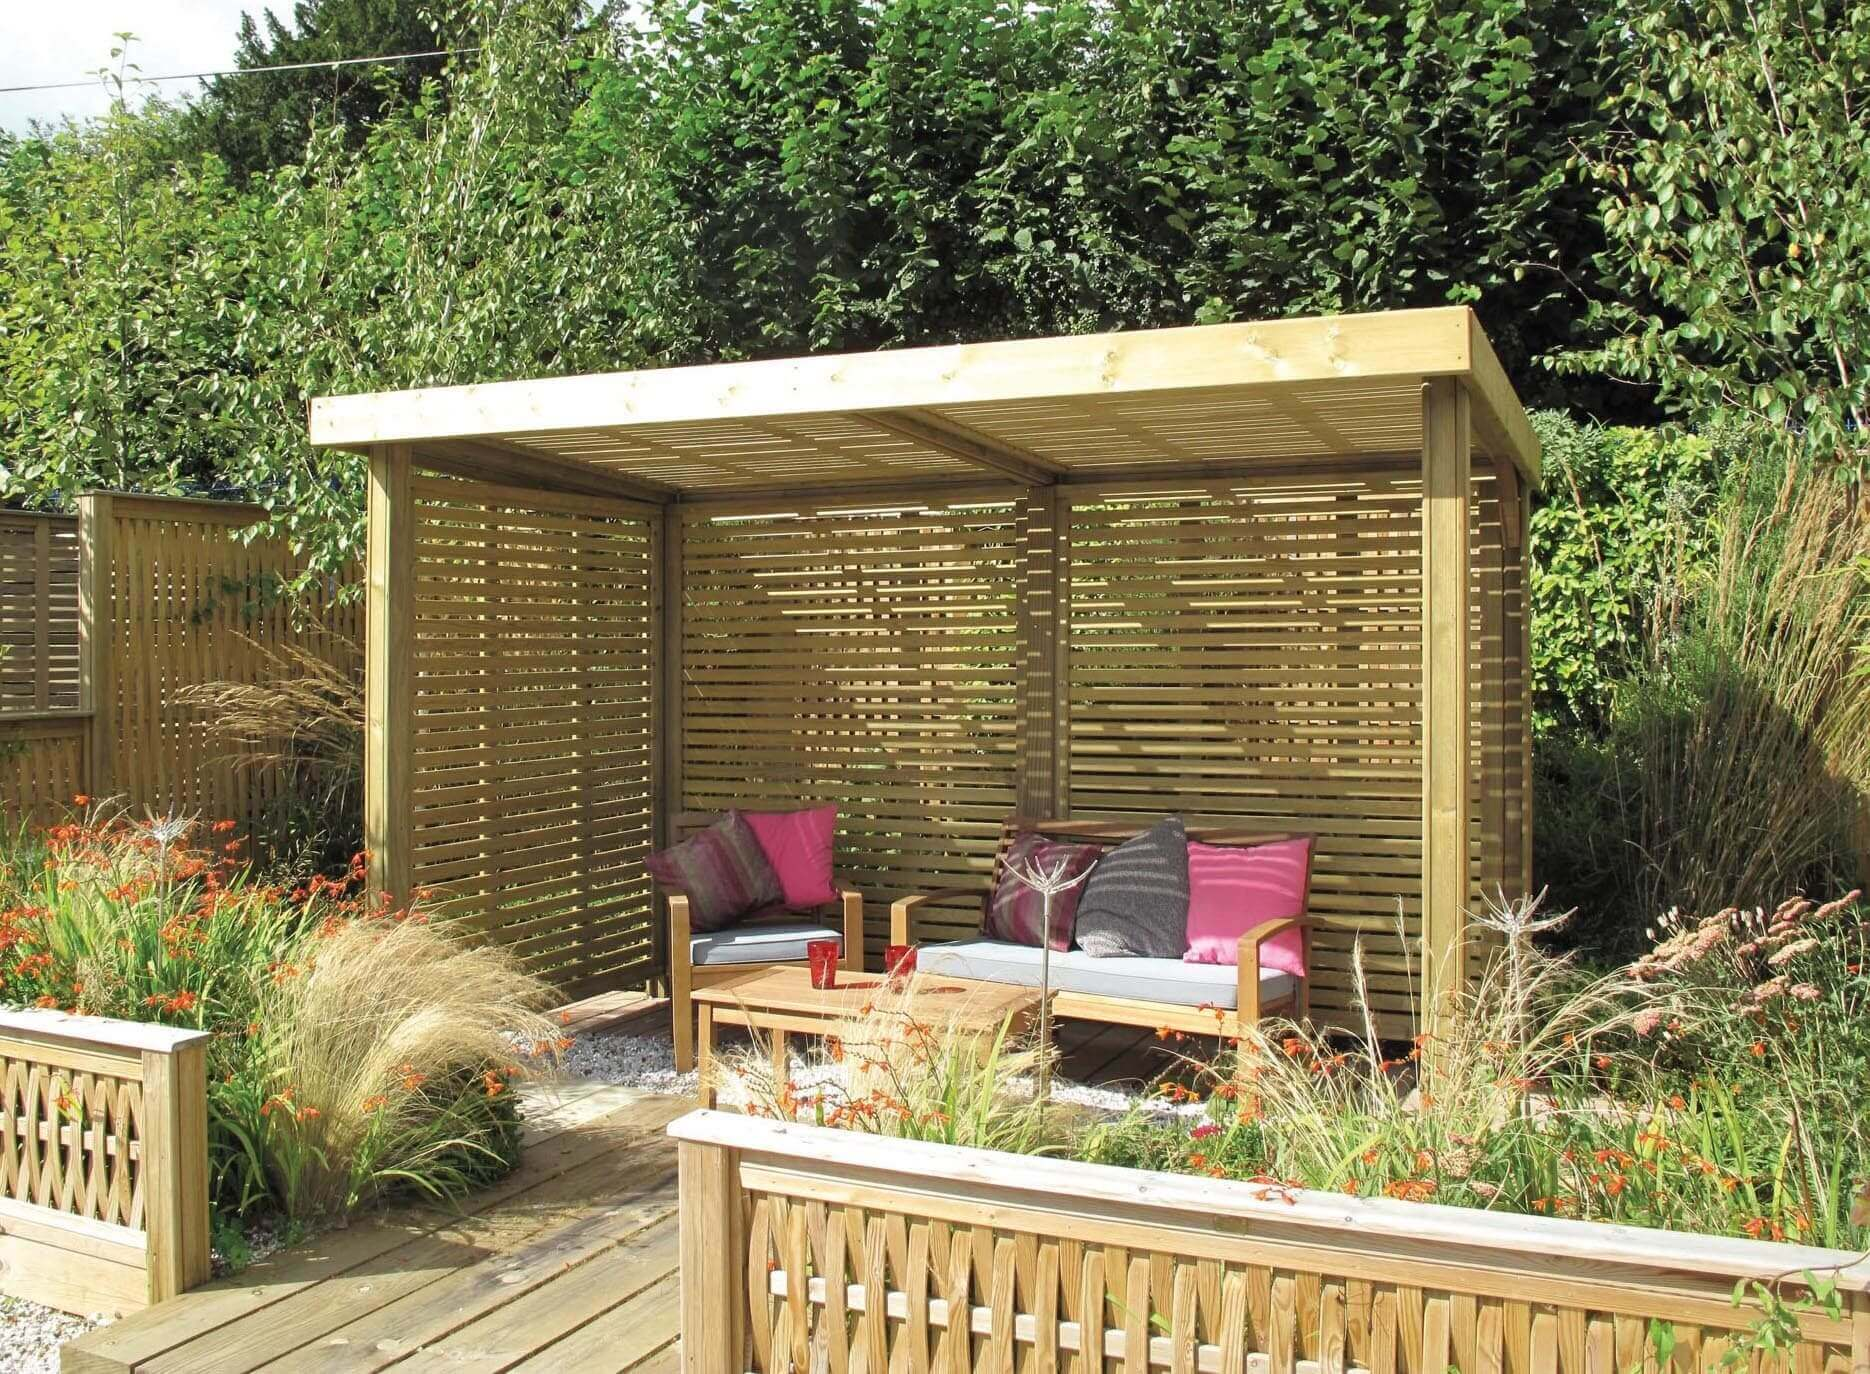 Retreat Garden Shelter fence seating design